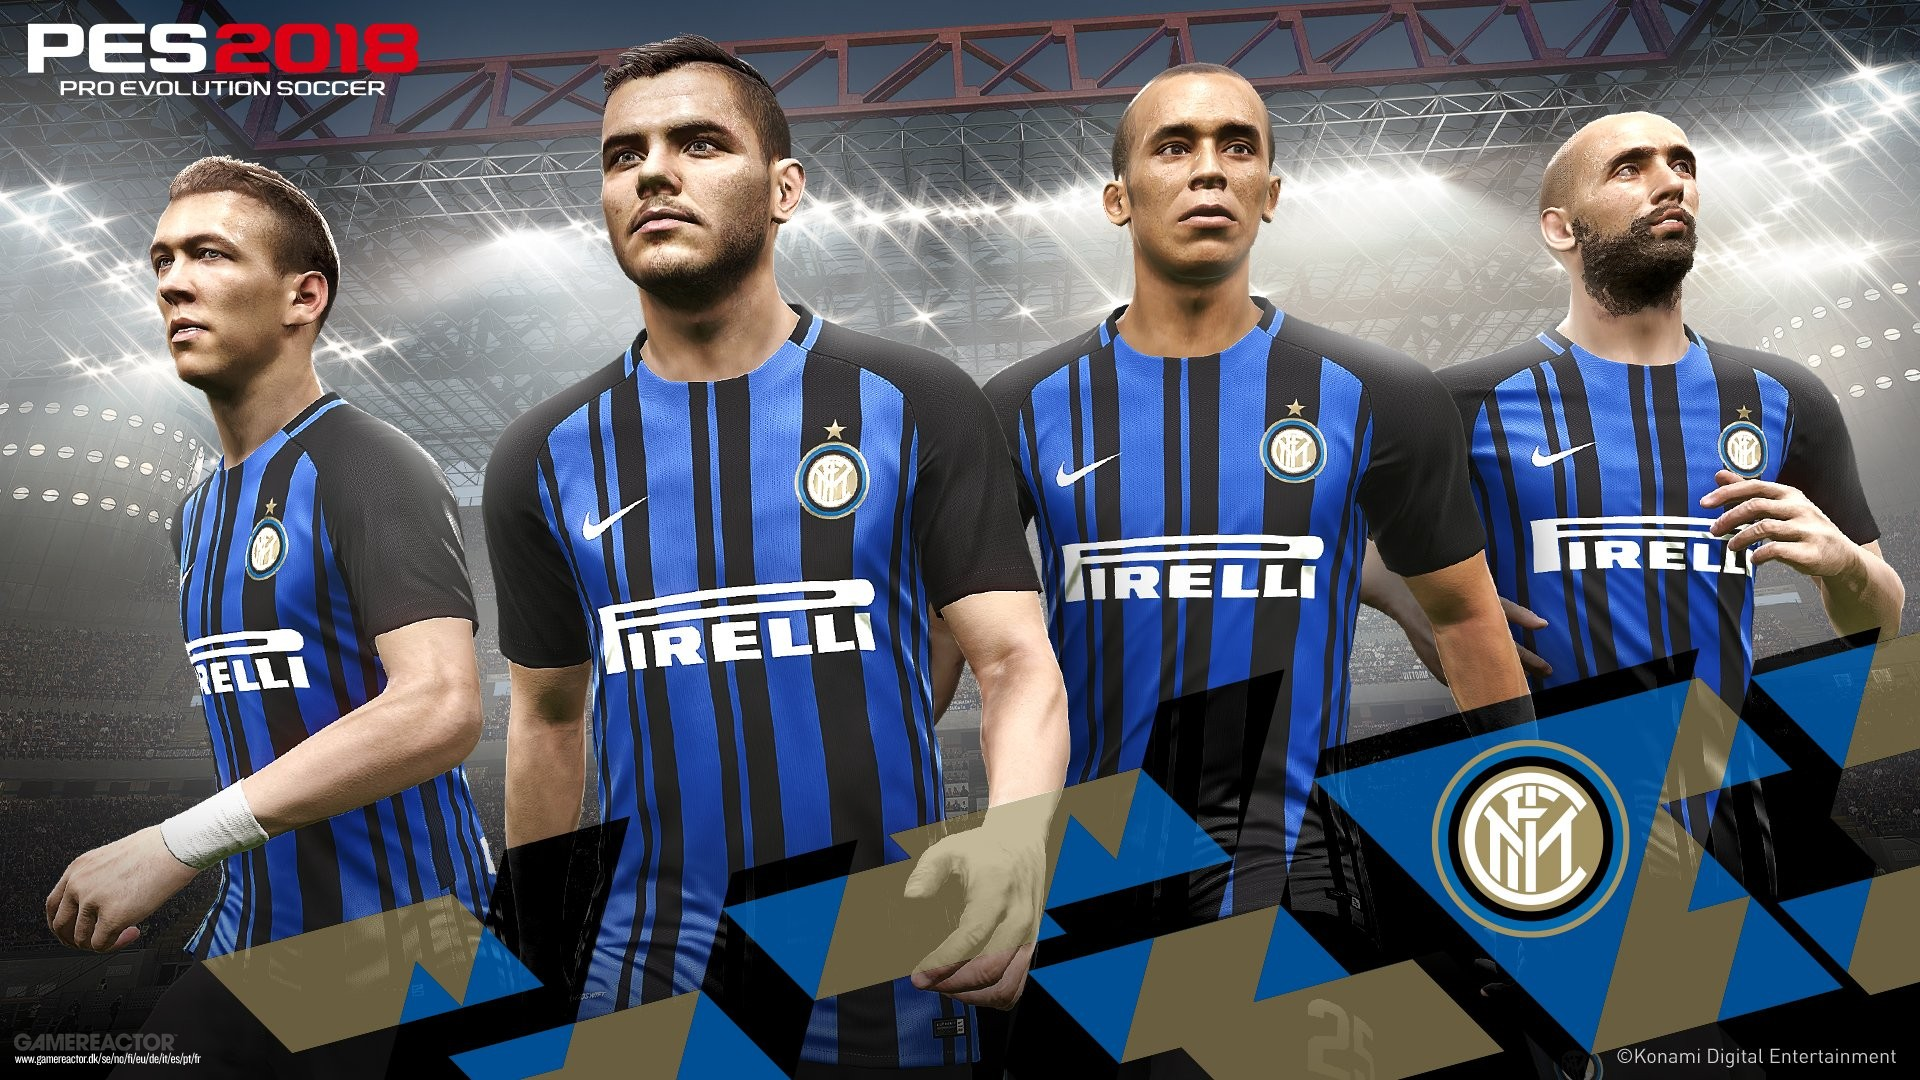 PES 2018 announces partnership with Inter Milan - Pro Evolution